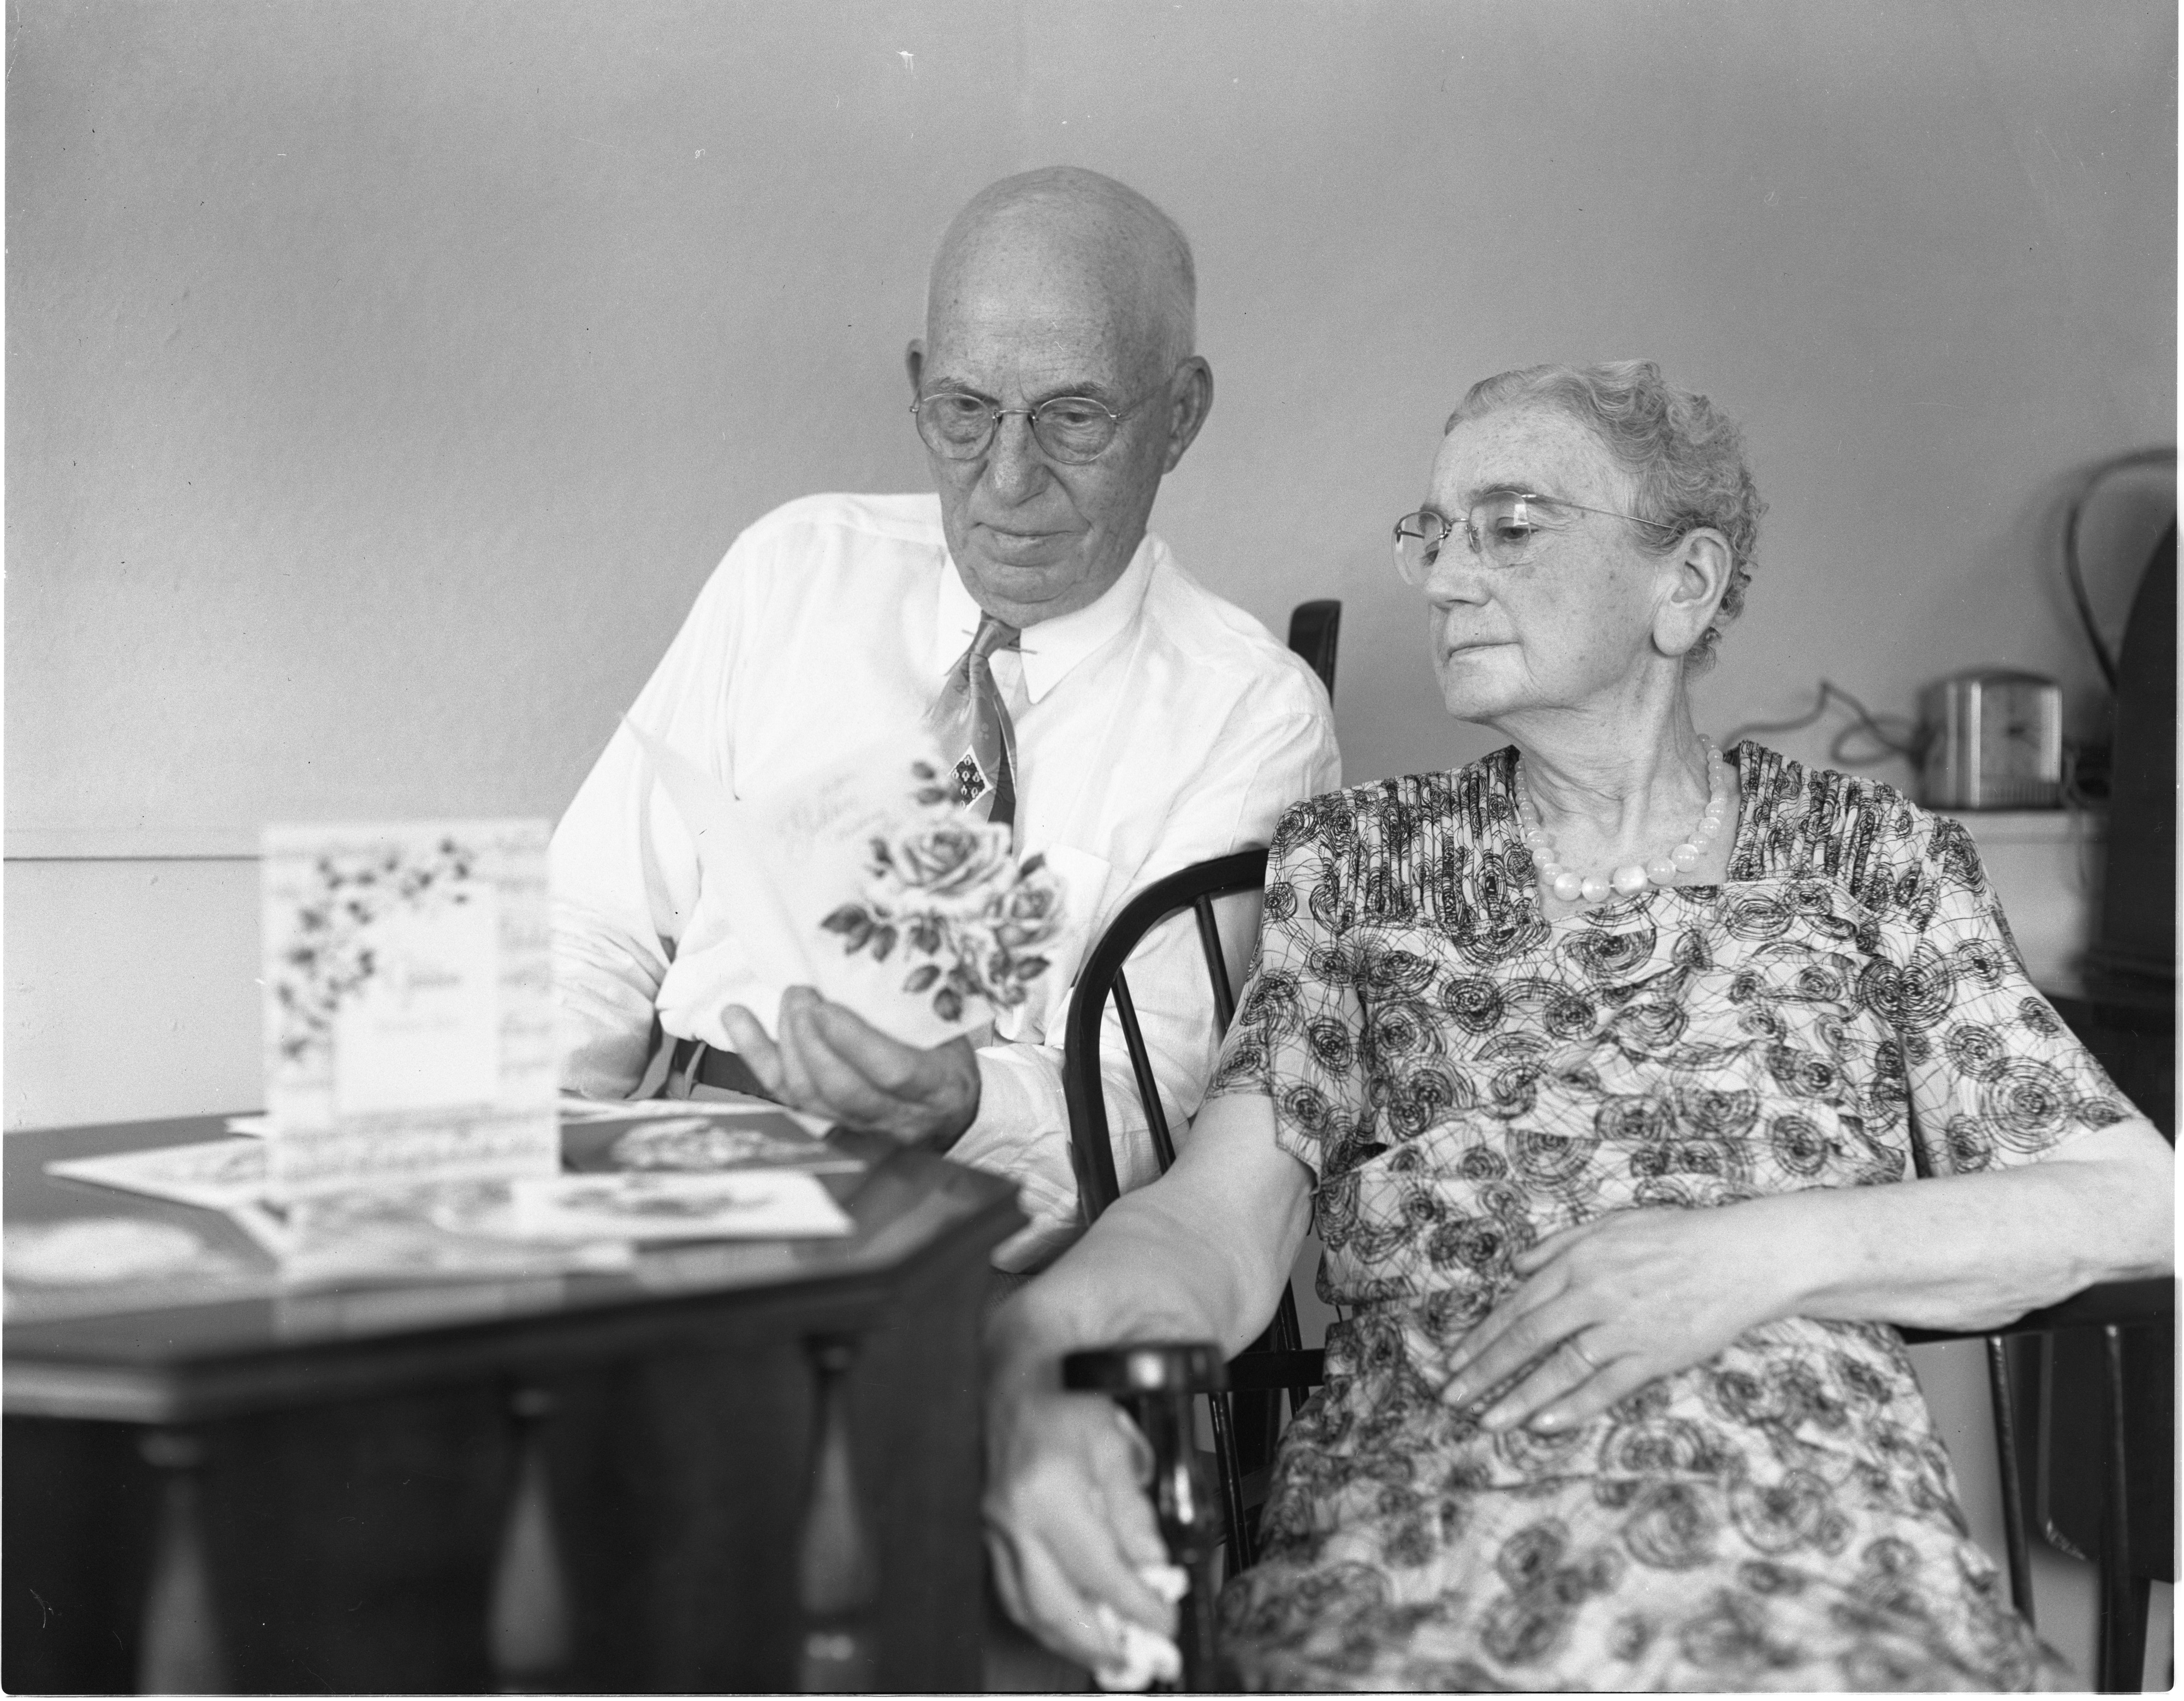 Mr. and Mrs. David Willits, July 1952 image